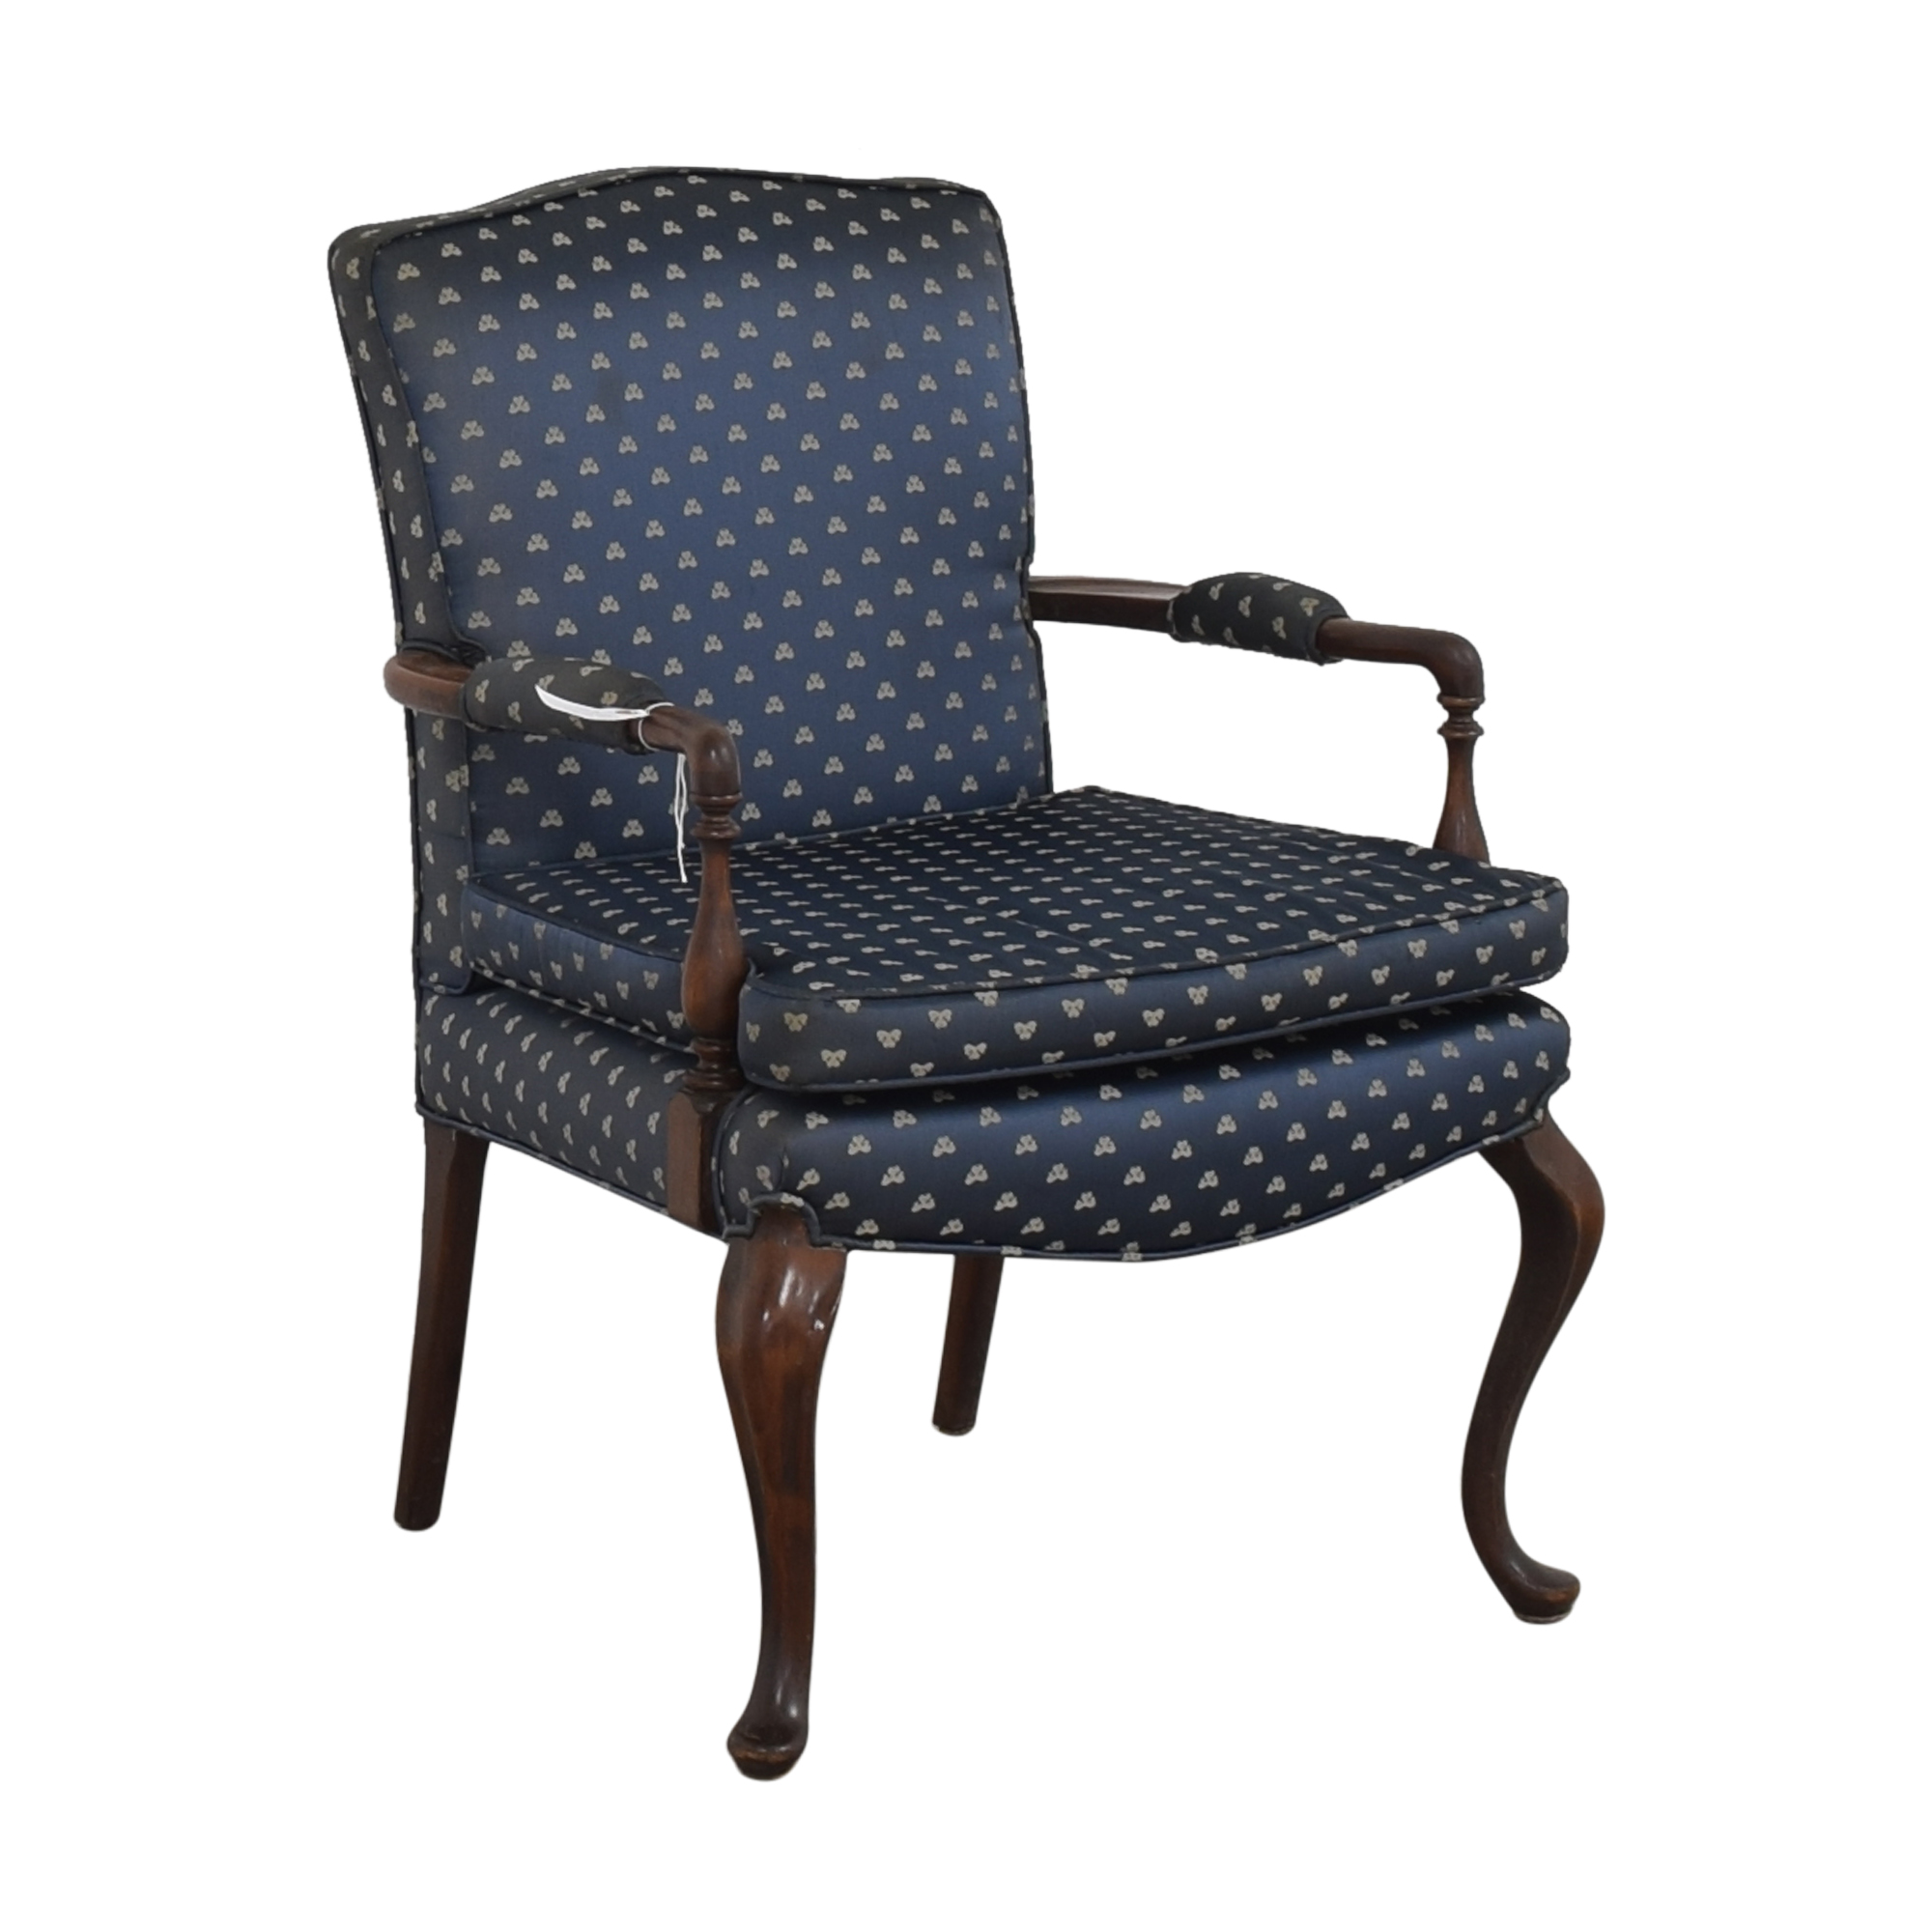 Upholstered Accent Chair sale